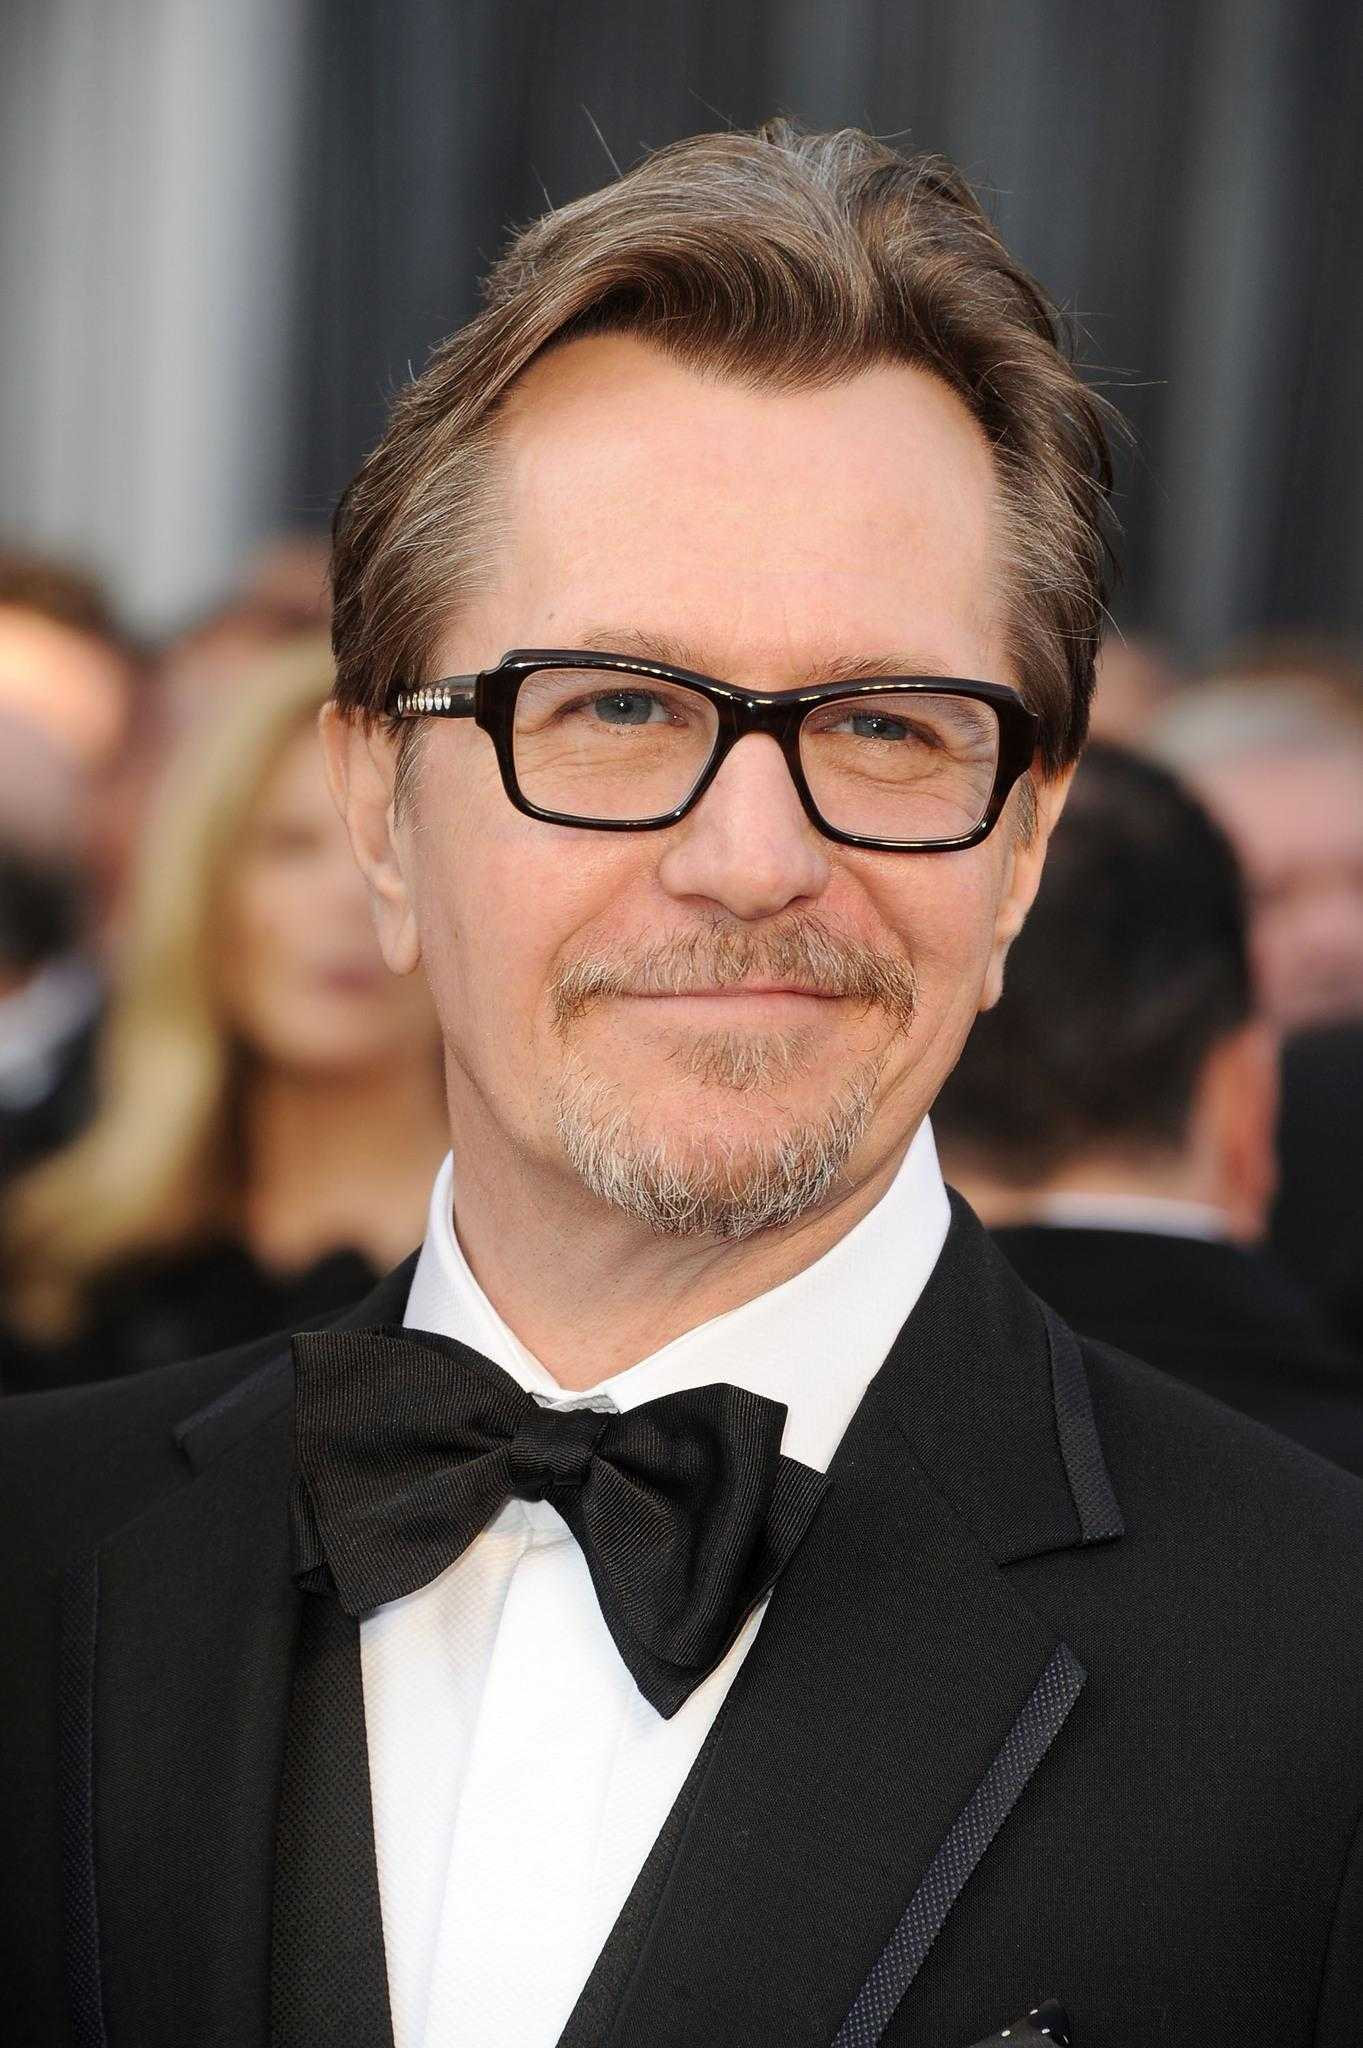 Gary Oldman Shares His Thanksgiving Thoughts